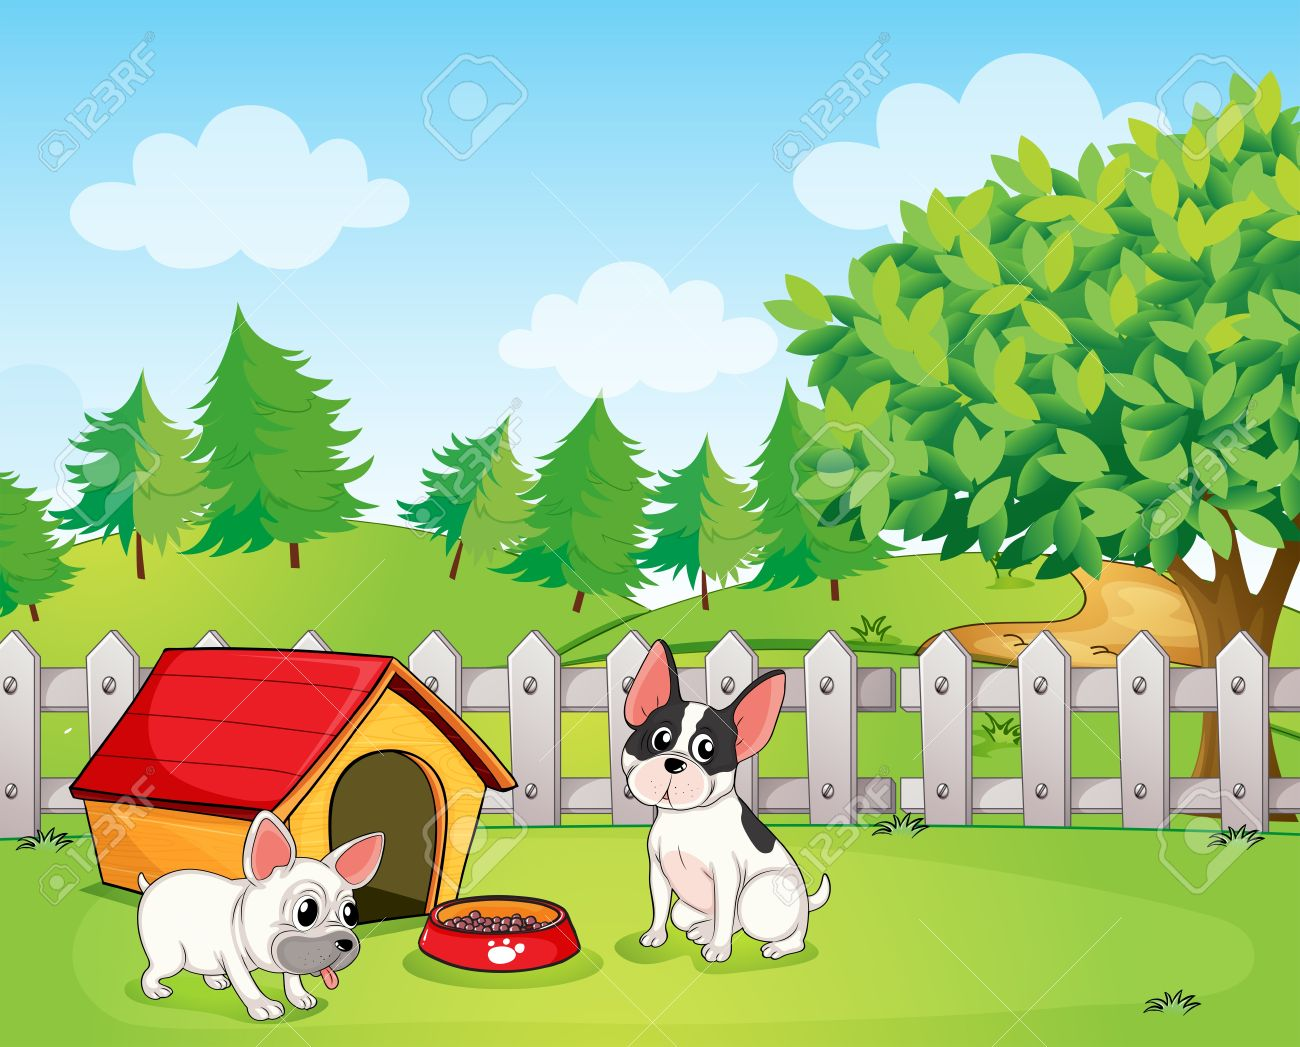 hight resolution of illustration of a backyard with two dogs stock vector 18607807